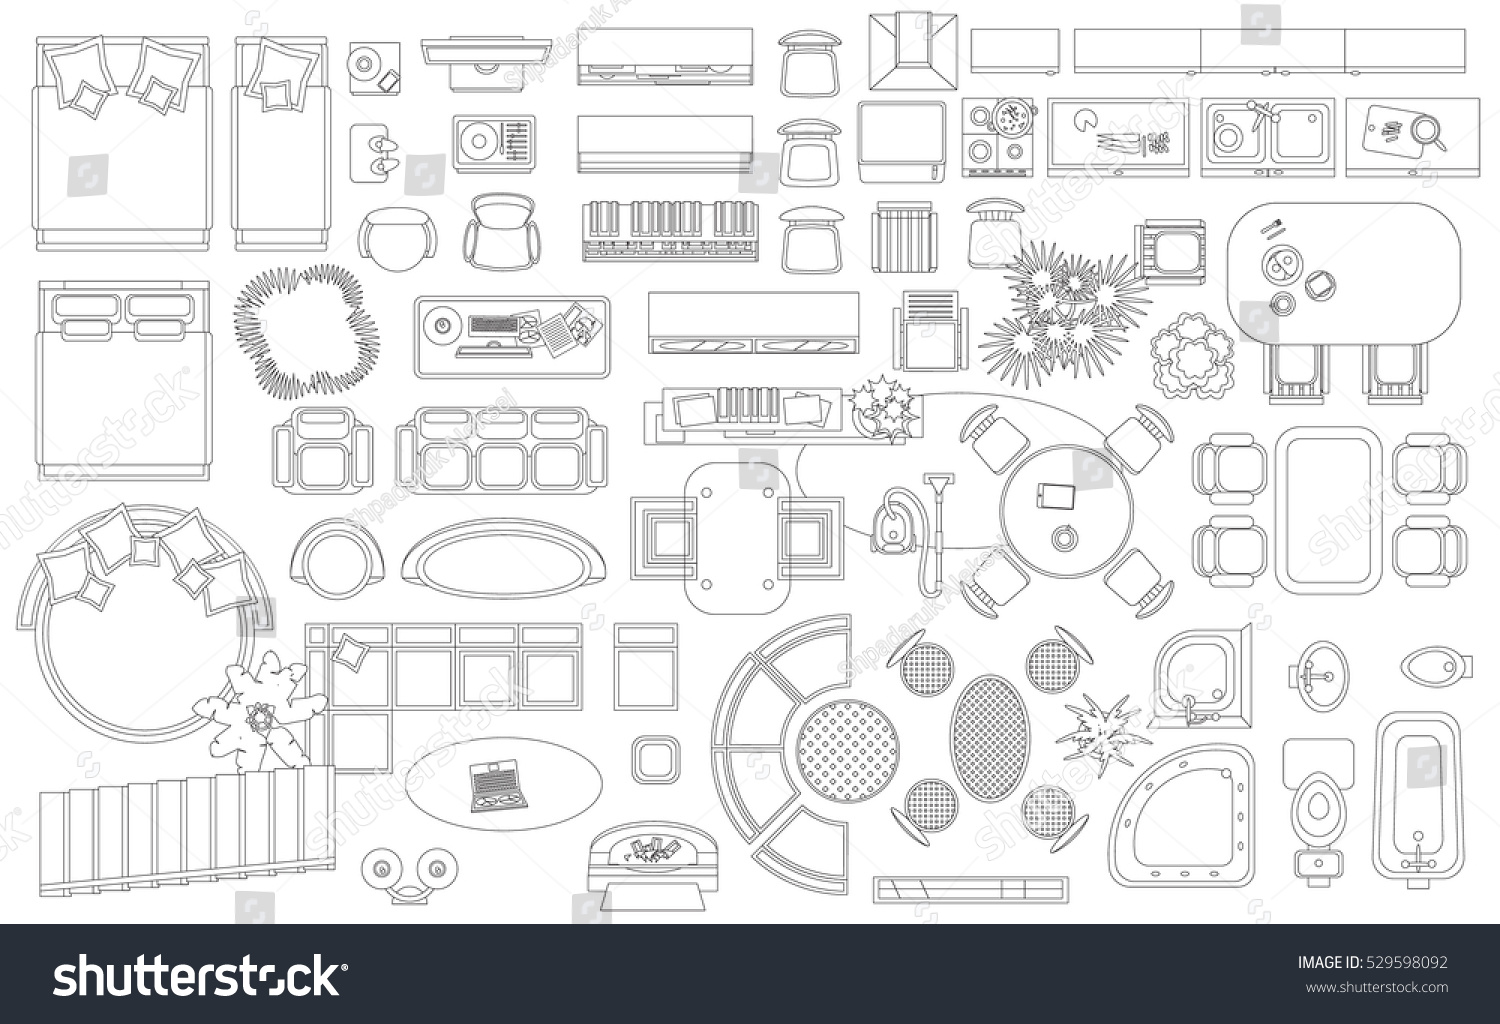 Black White Interior Design Furniture For Floor Plan ~ Royalty free set of linear icons interior top view